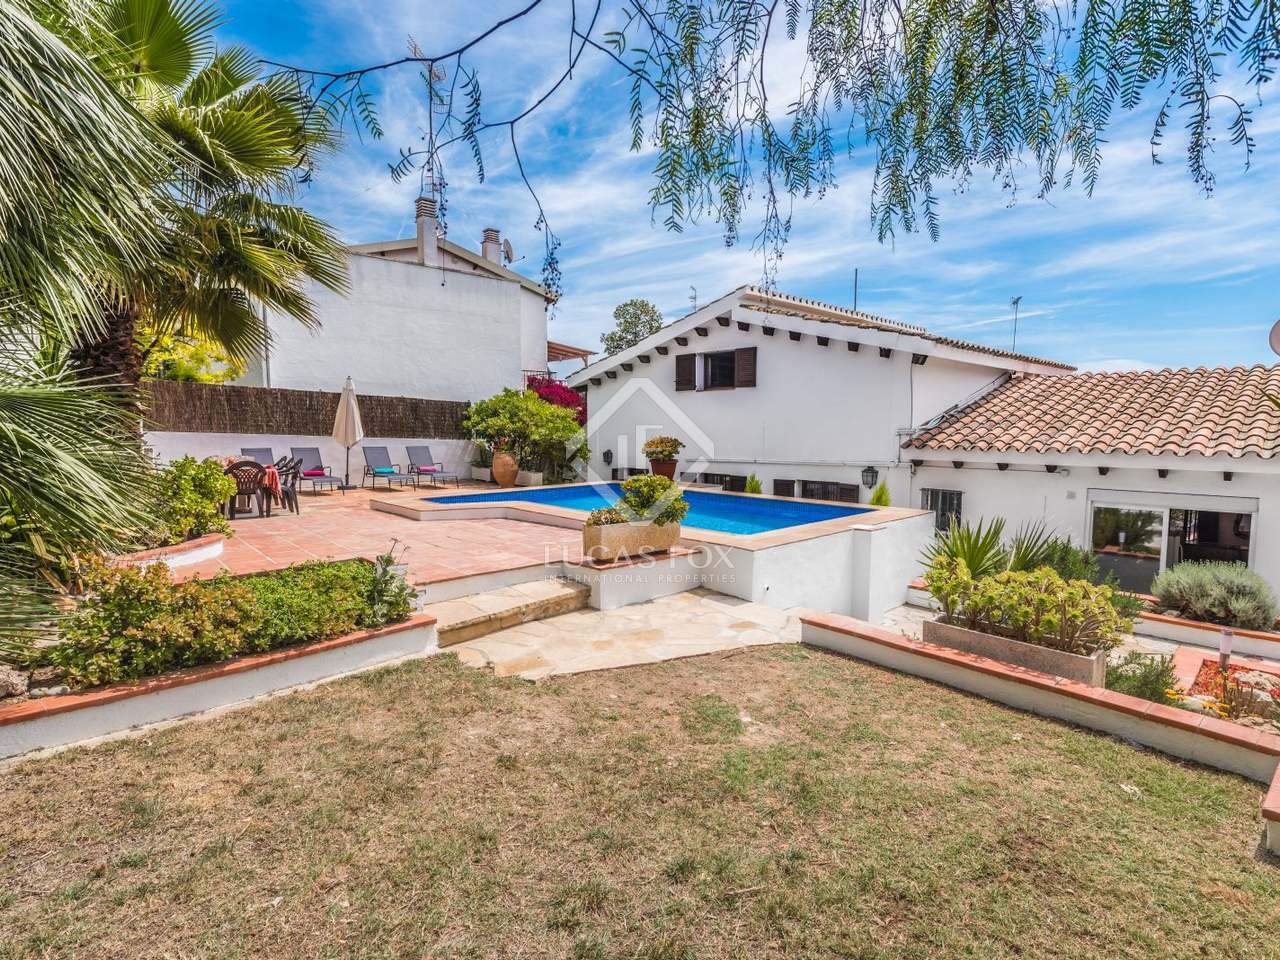 4 bedroom house with a pool for sale in vallpineda for Four bedroom house with pool